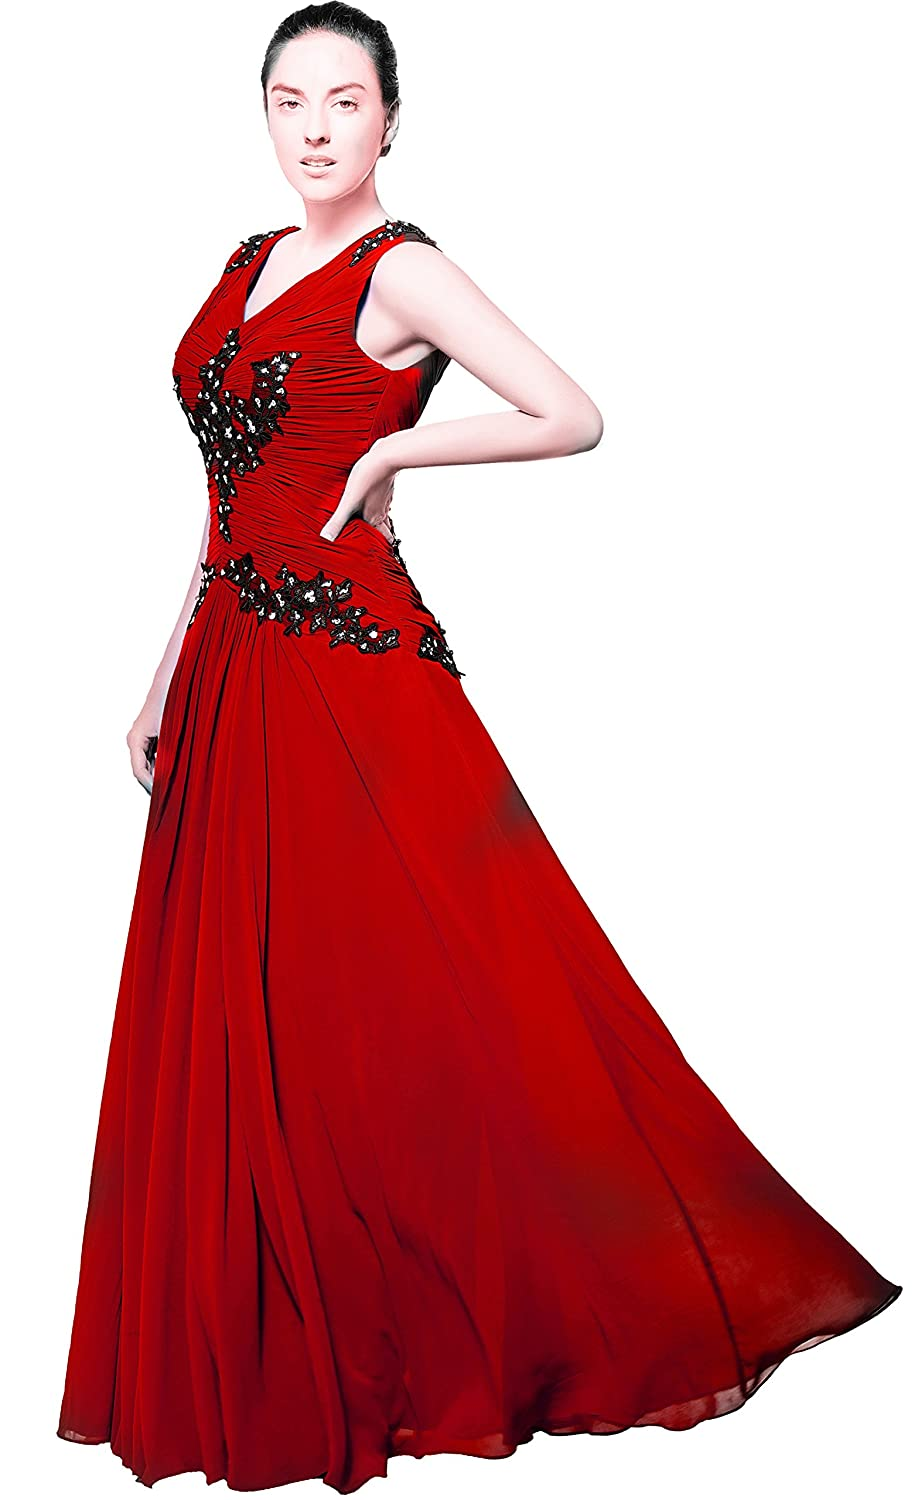 atopdress p09 Ball prom sequined gown evening dress party wear Bridemaids (8, wine): Amazon.co.uk: Clothing